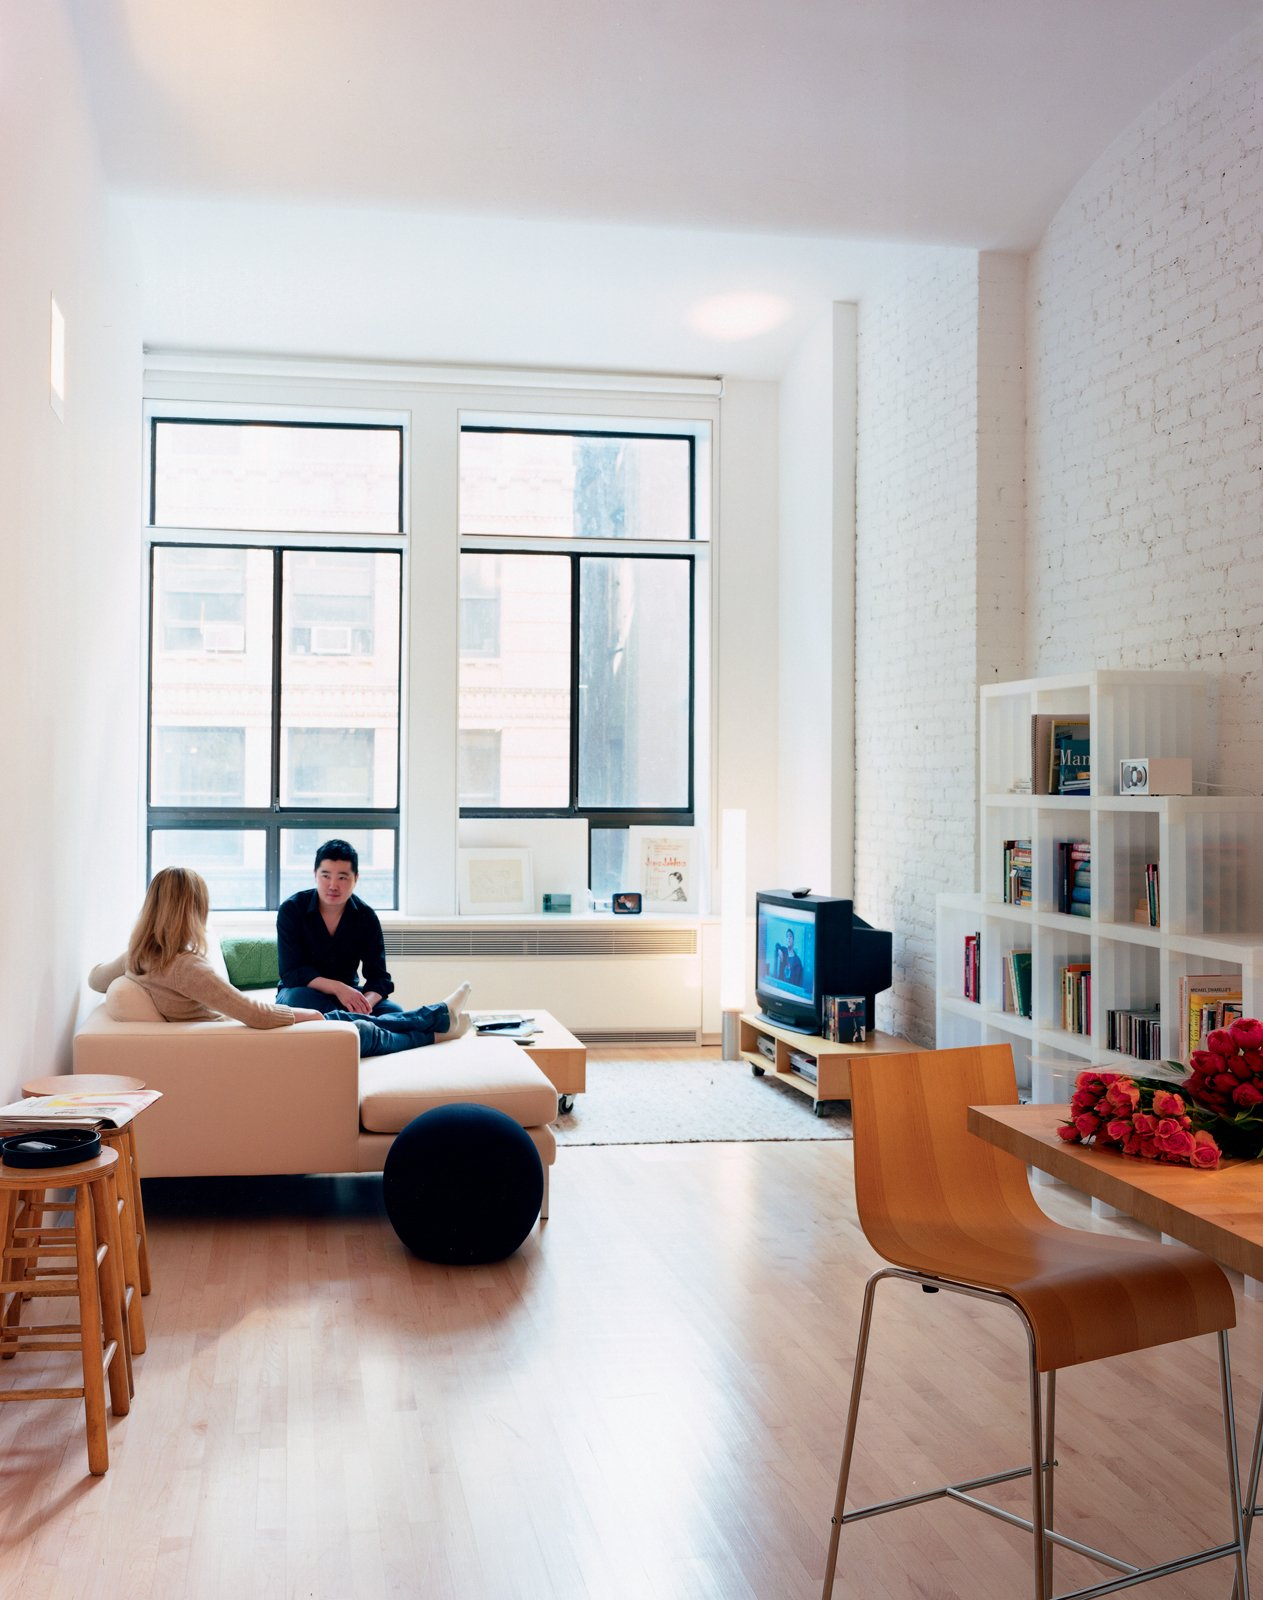 """A reflective light shelf sits atop the lower window units. """"When light hits the shelf, it reflects back on the ceiling,"""" Woo explains. """"This is a very deep space, so we tried to bring the light as far back as possible."""" The Neo sectional chaise by Niels Bendsten provides comfortable seating for Wonbo and his friend Alyssa Litoff. The Cubits shelves are by Doron Lachish.  Photo 4 of 7 in Big City, Little Loft"""